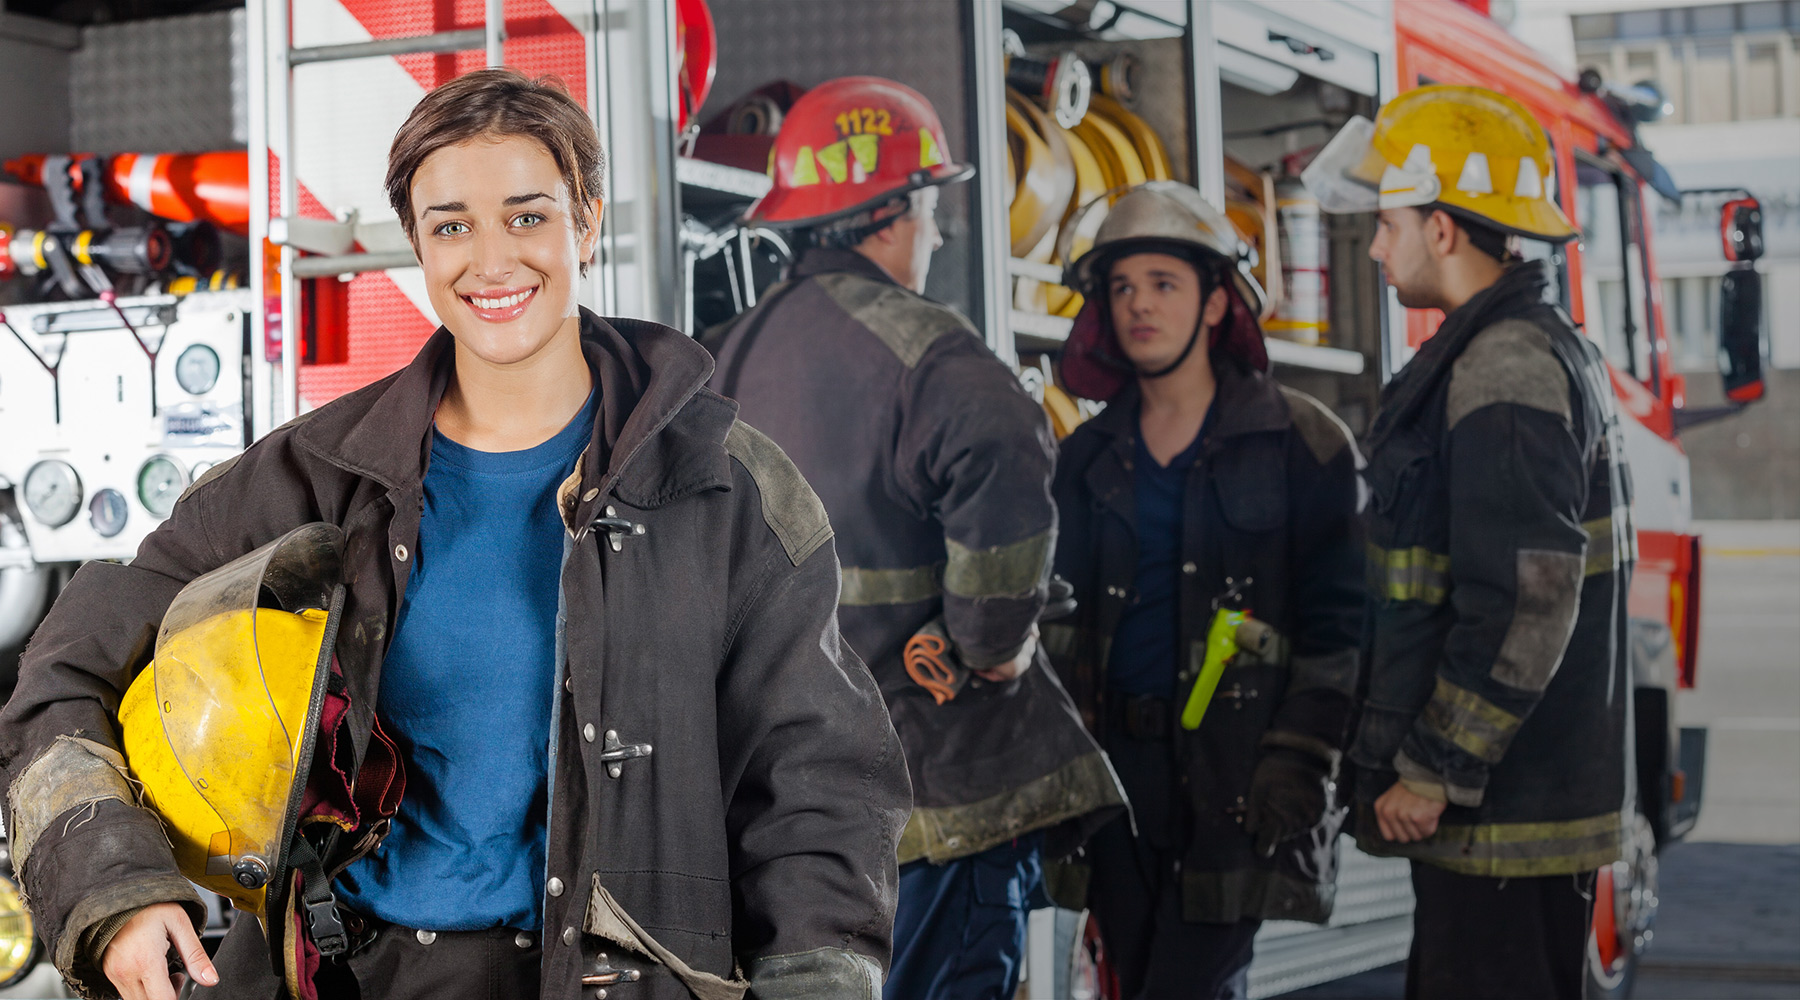 Cimara image of a female firefighter with her response team